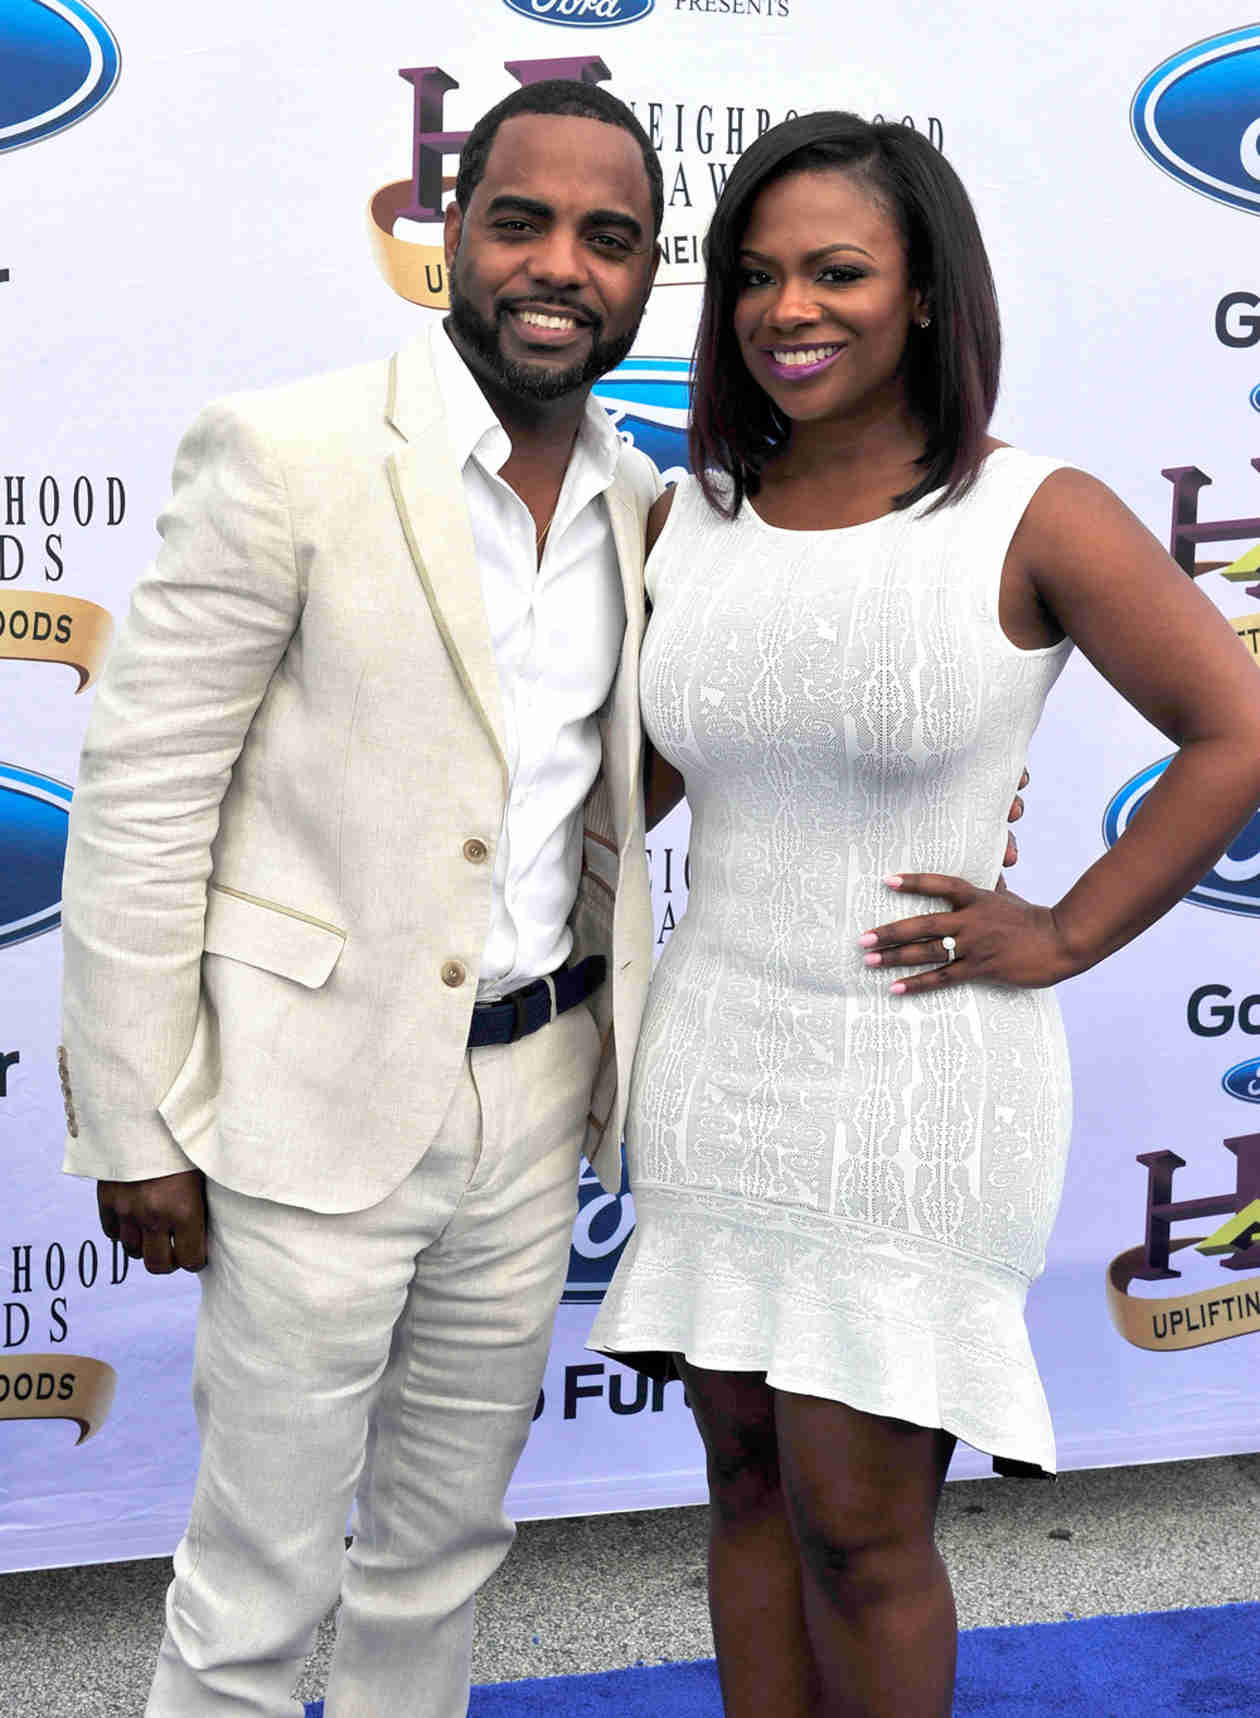 Kandi Burruss and Todd Tucker Wear Matching Outfits to 2014 Ford Neighborhood Awards (PHOTO)